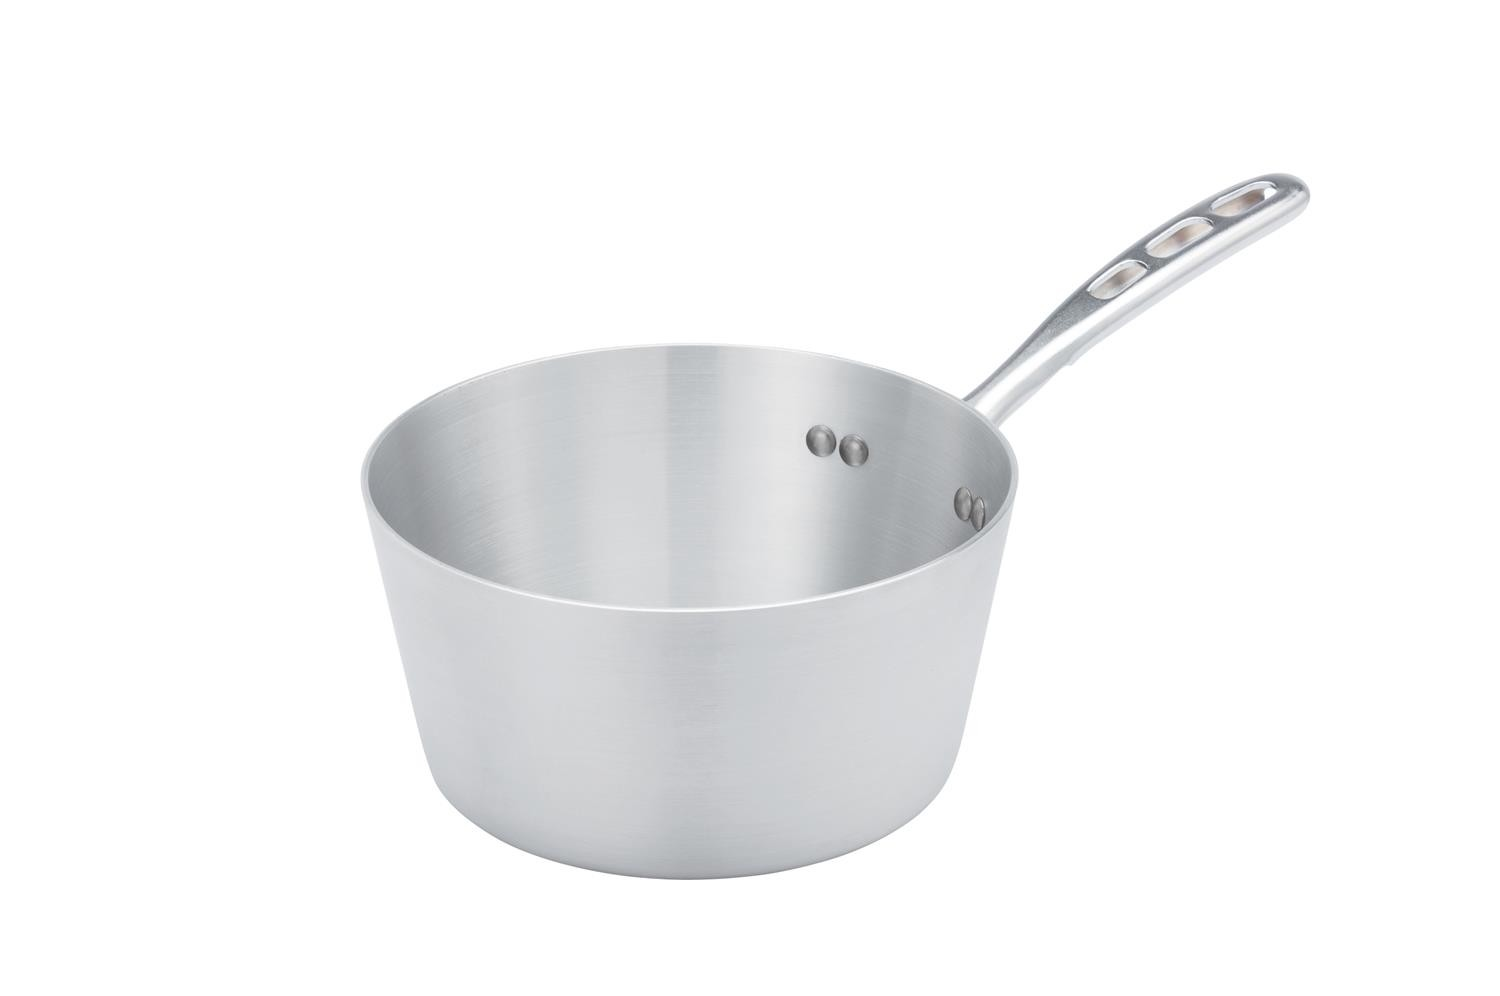 Vollrath 67303 Wear-Ever Aluminum Tapered Sauce Pan with TriVent Handle 3.75 Qt.